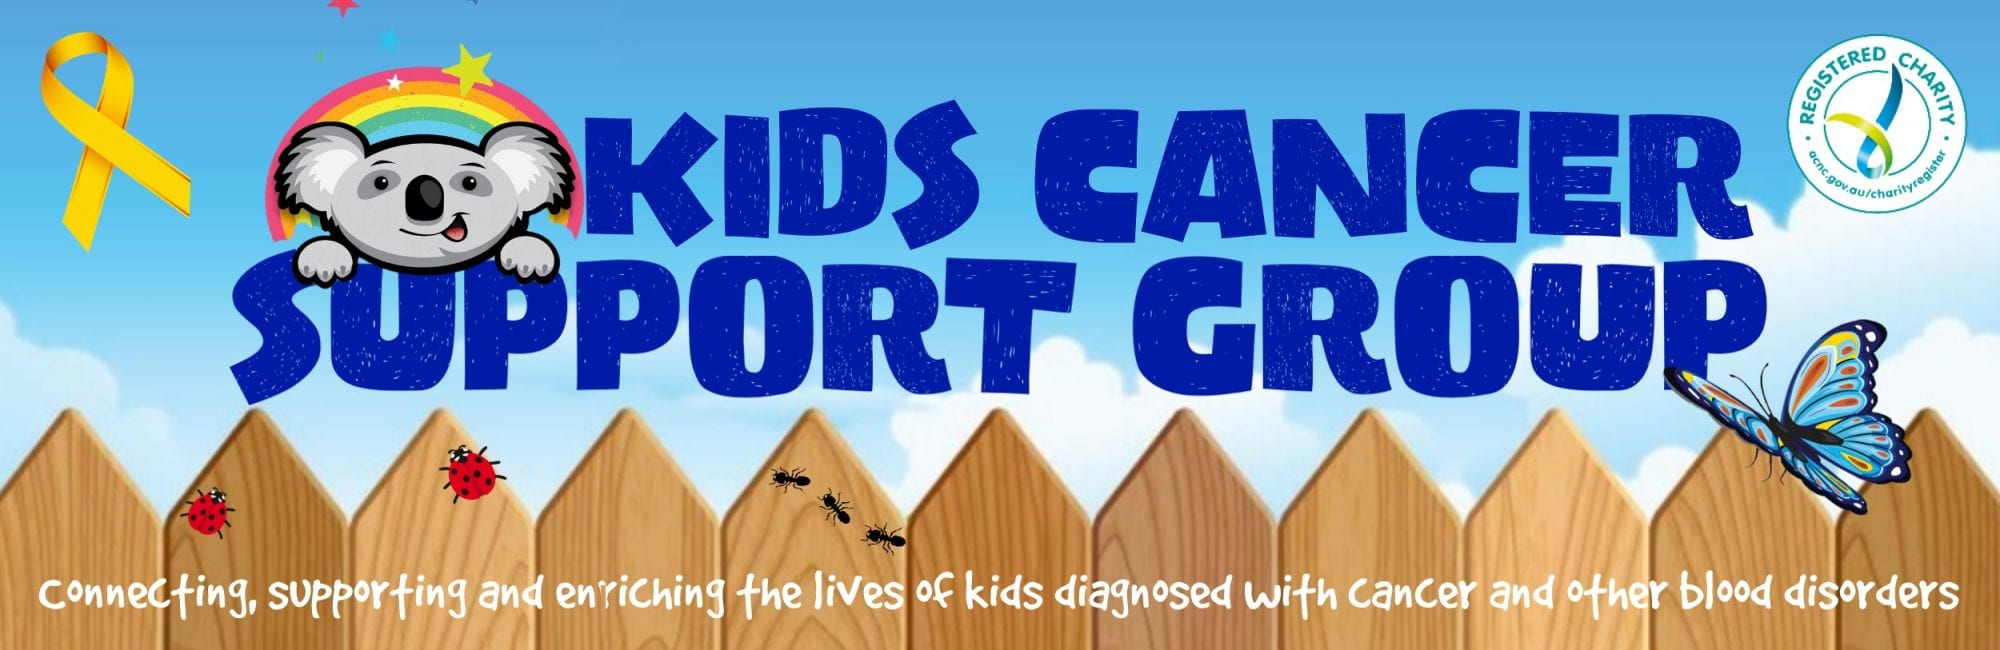 Kids Cancer Support Group